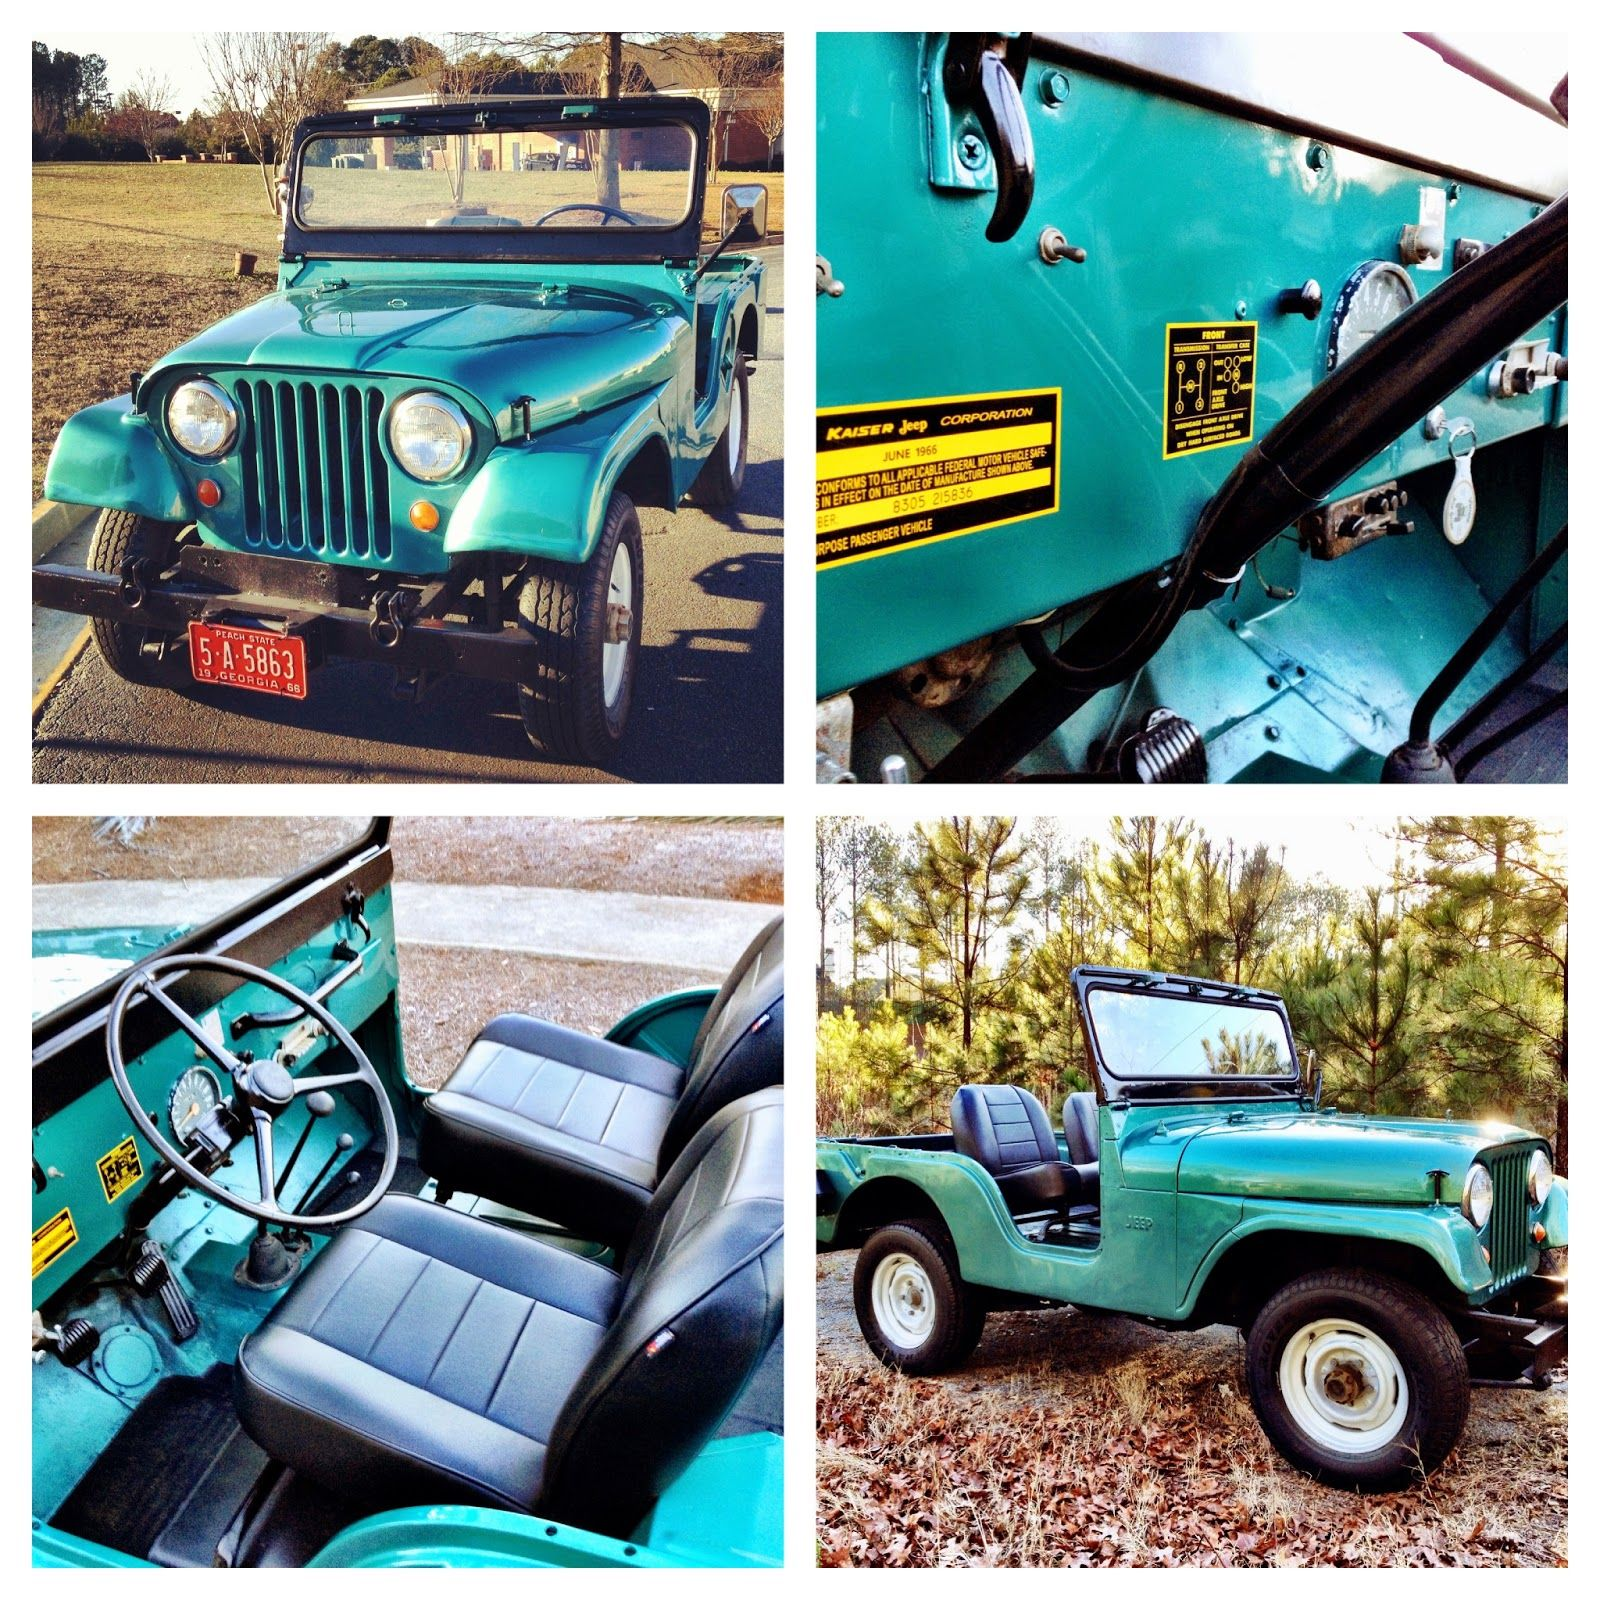 Jeep Grand Cherokee For Sale Near Me: Vintage Jeep Store I Vintage Jeep Restorations, Parts And